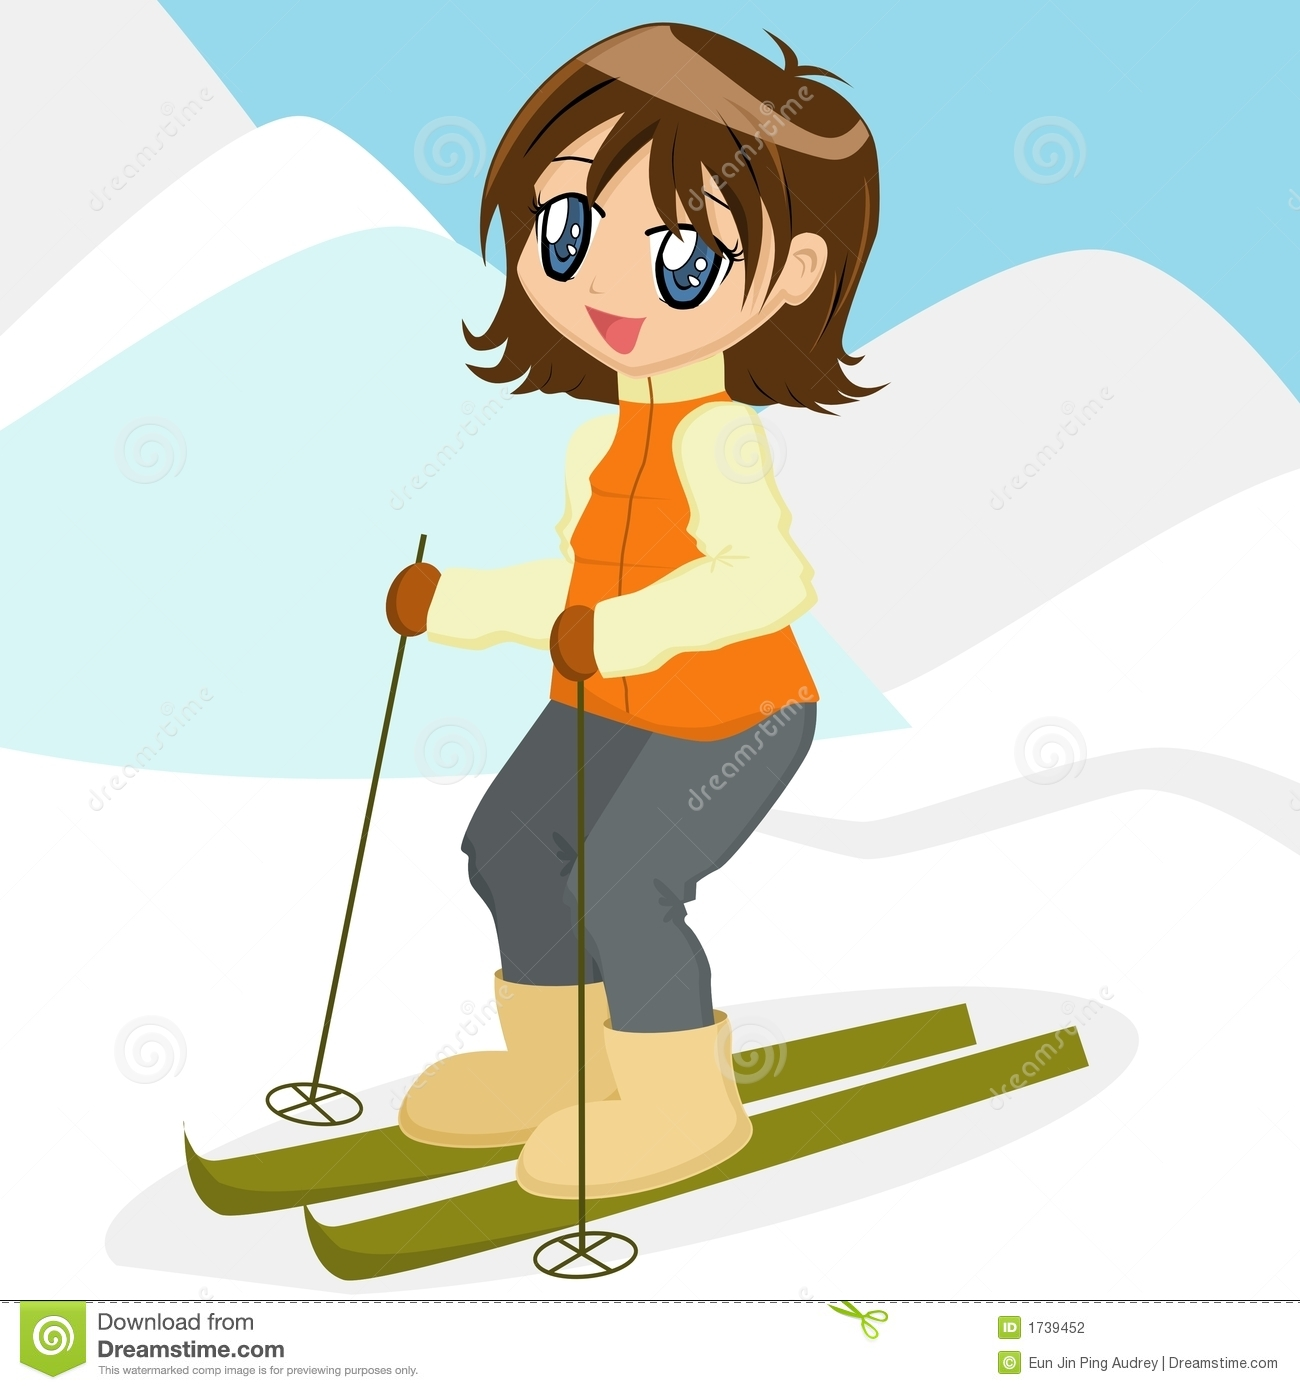 Cartoon Girl Skiing Stock Photography - Image: 1739452